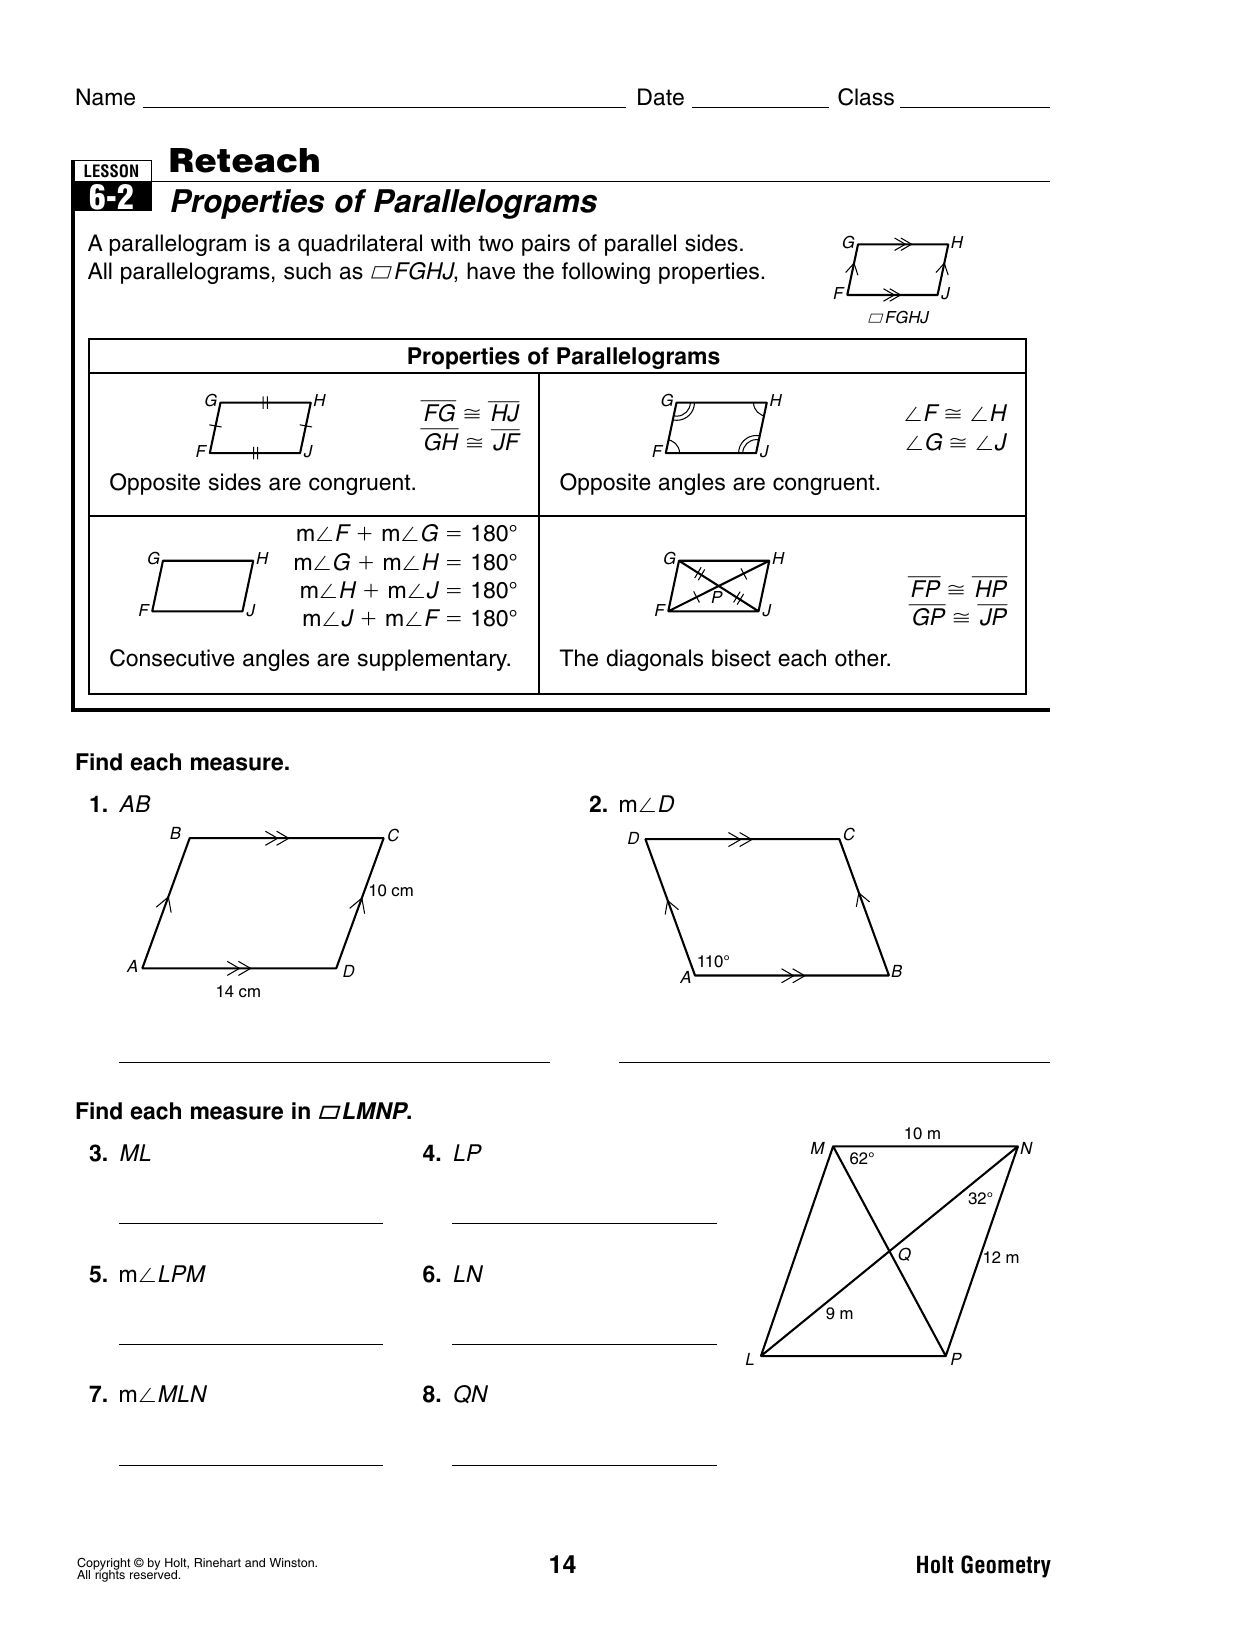 Problem Solving Lesson 6 2 Properties Of Parallelograms